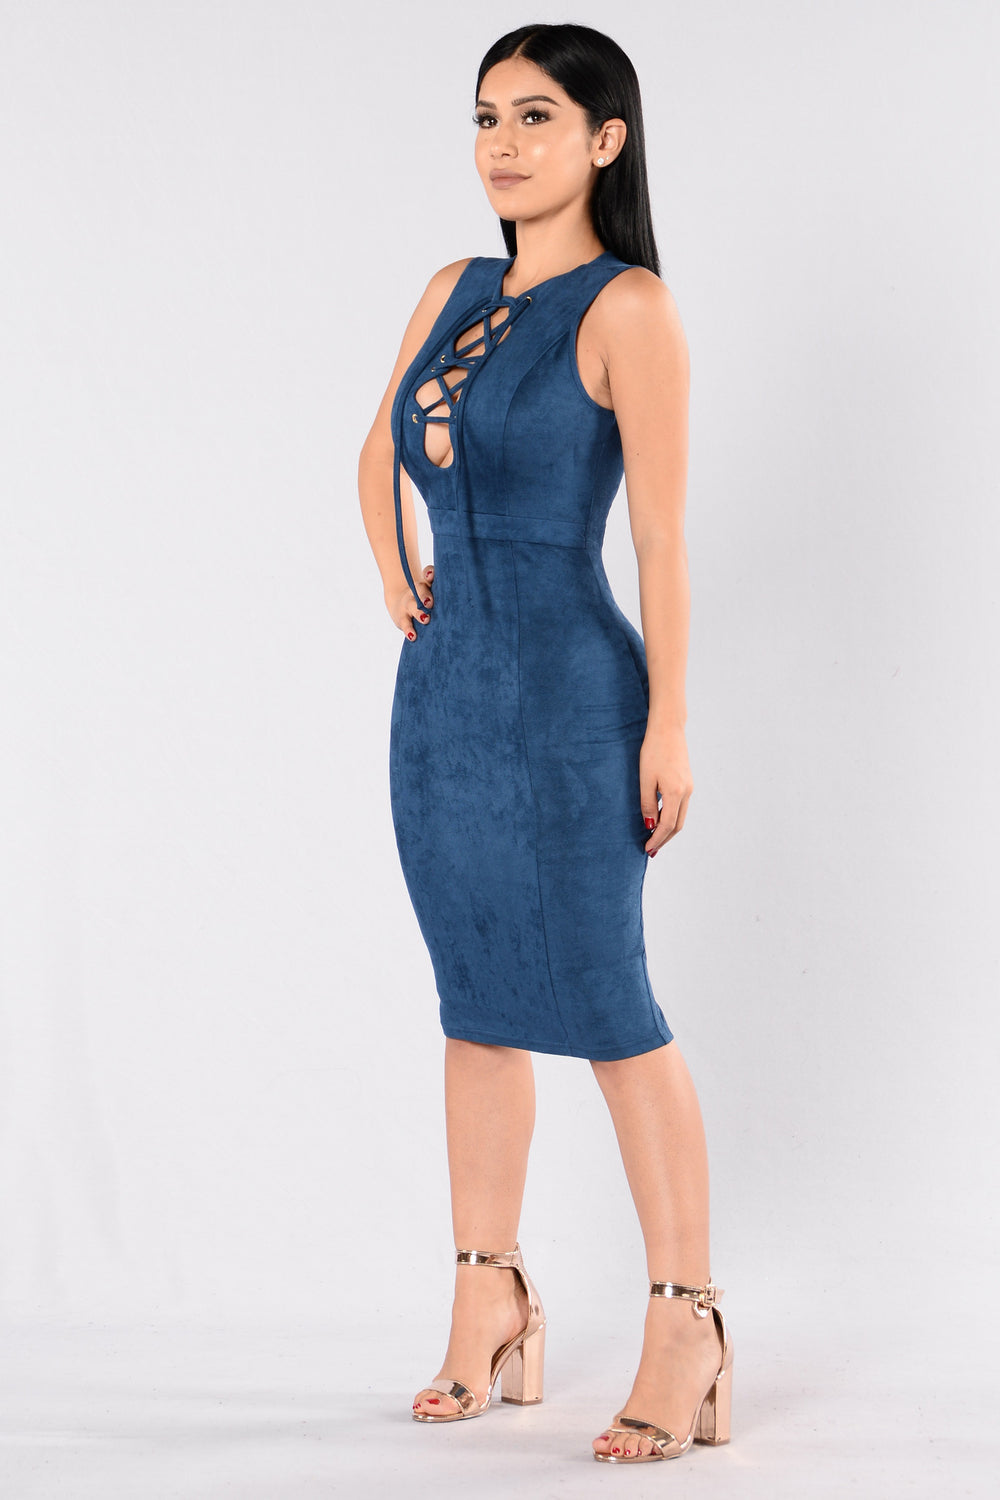 Amplify Dress - Indigo Blue